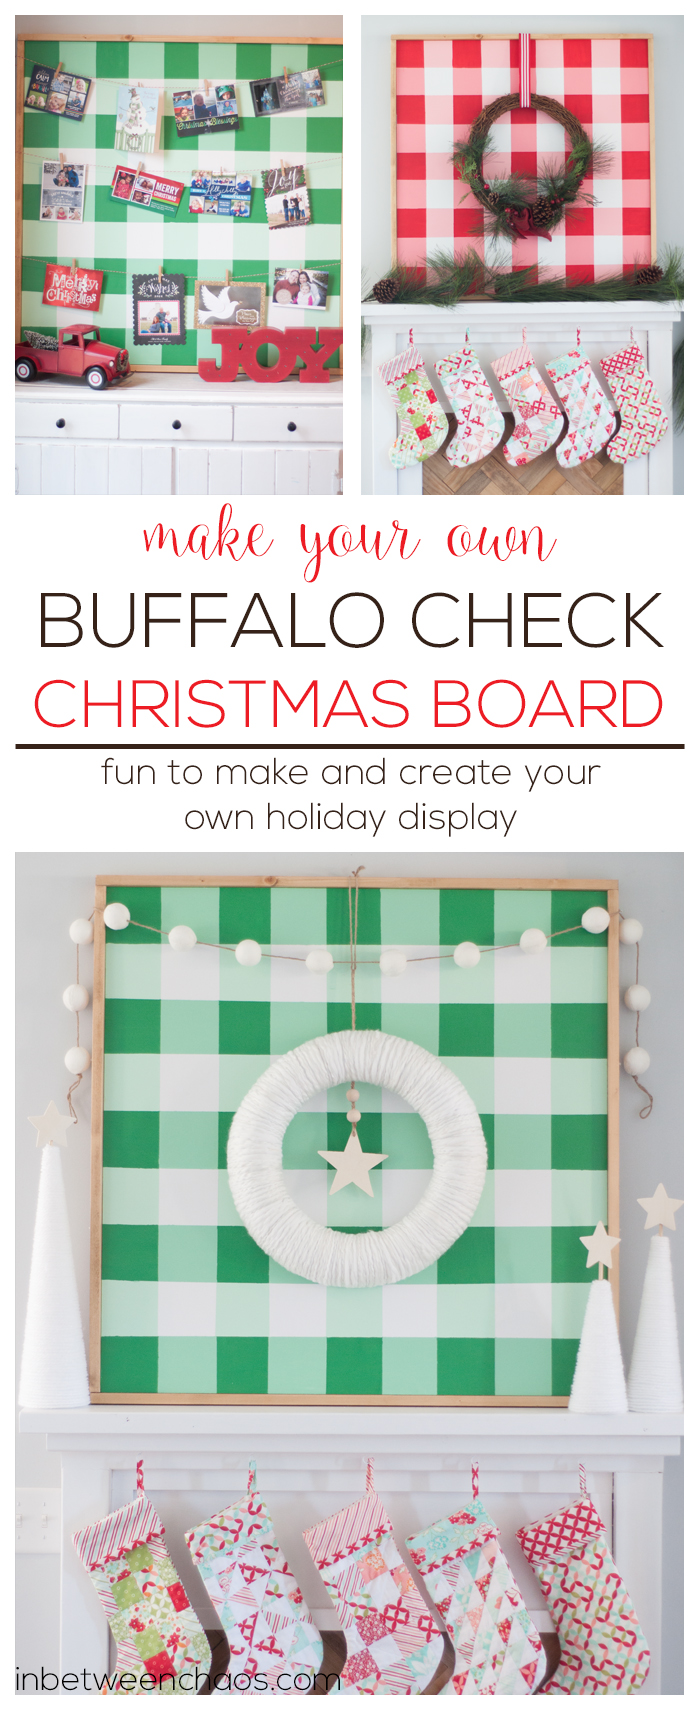 Buffalo Check Christmas Card and Wreath Display Board | inbetweenchaos.com